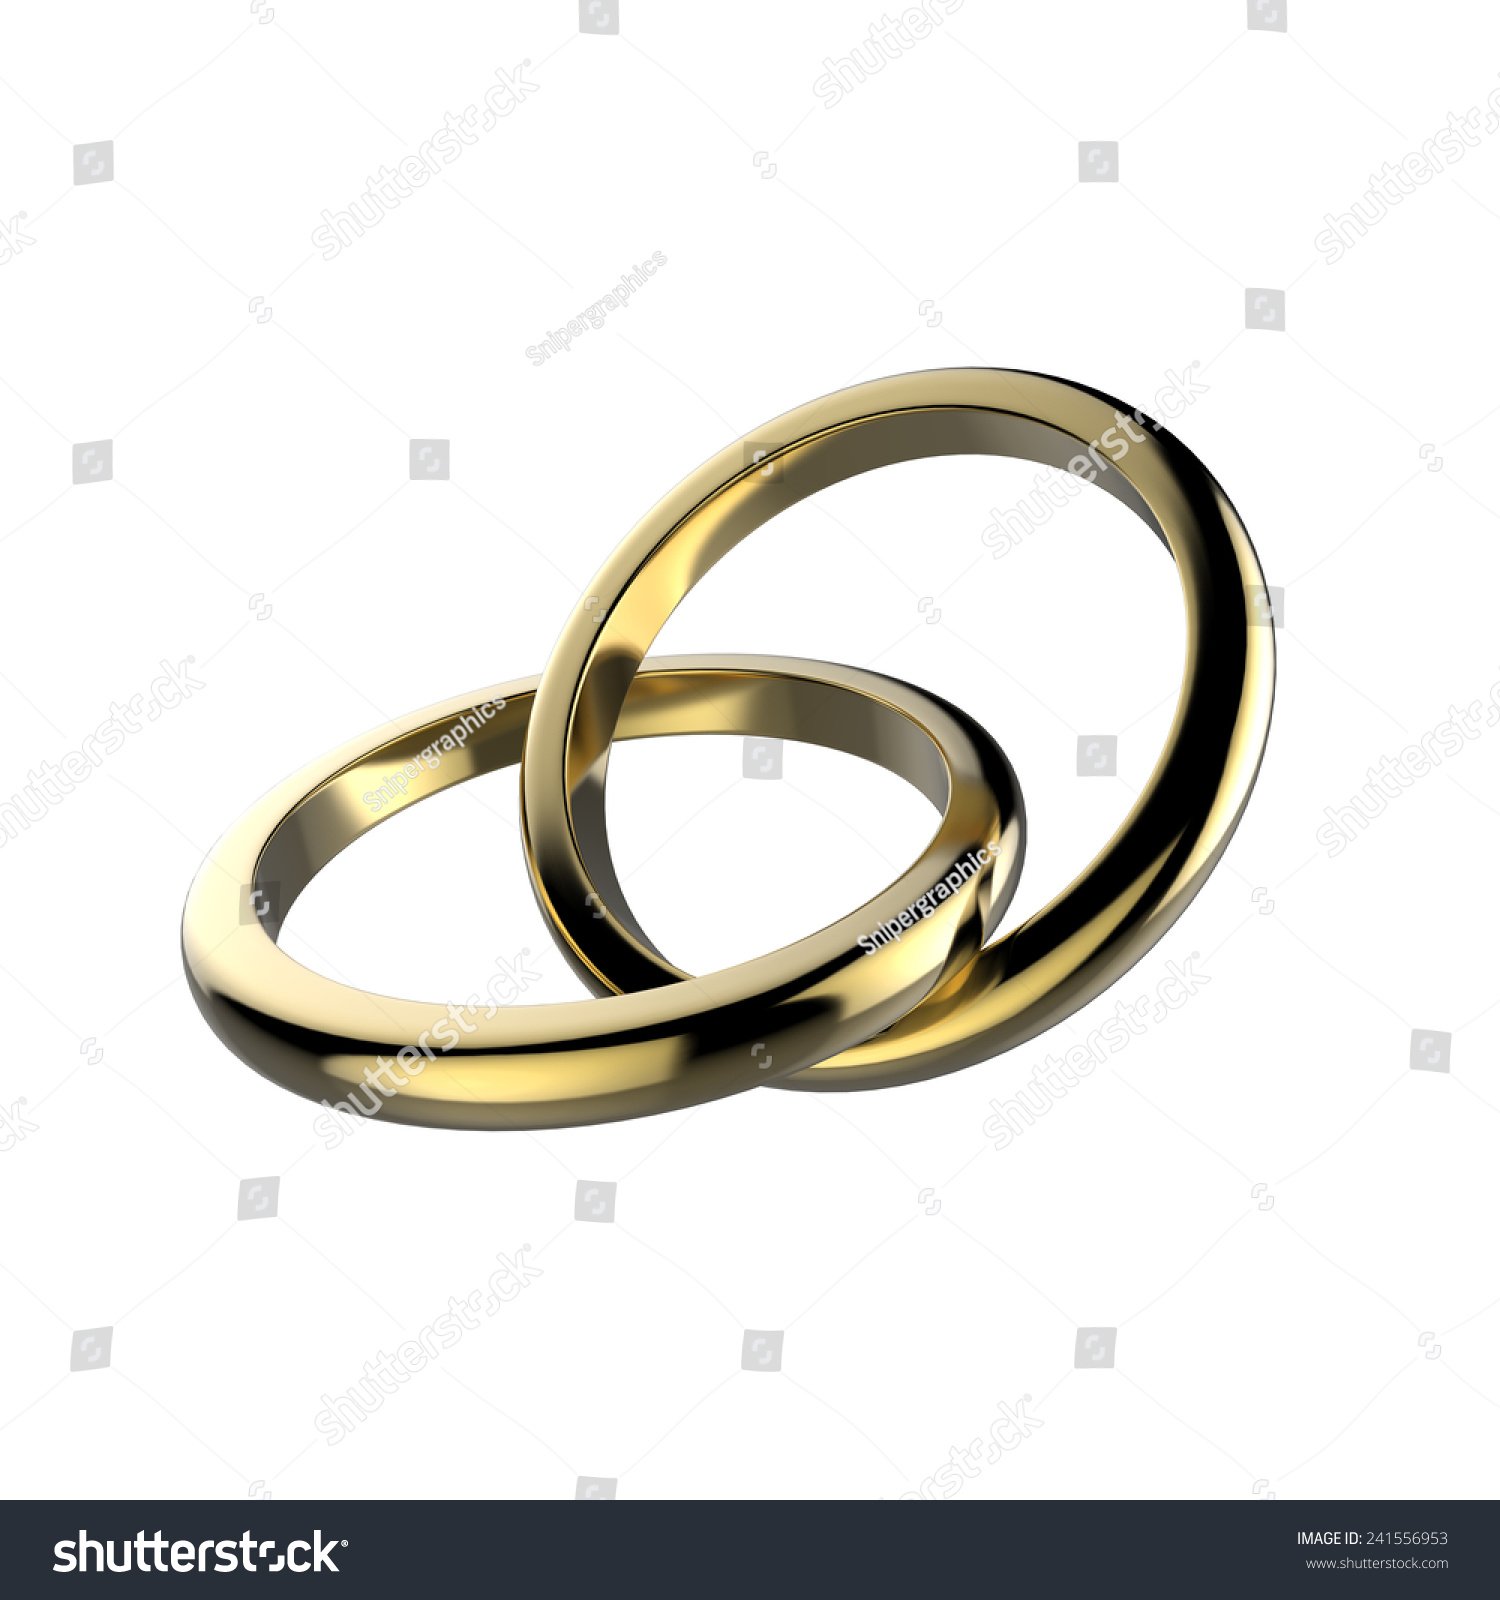 gold wedding stock vector engagement ring elegant of diamond rings shiny golden